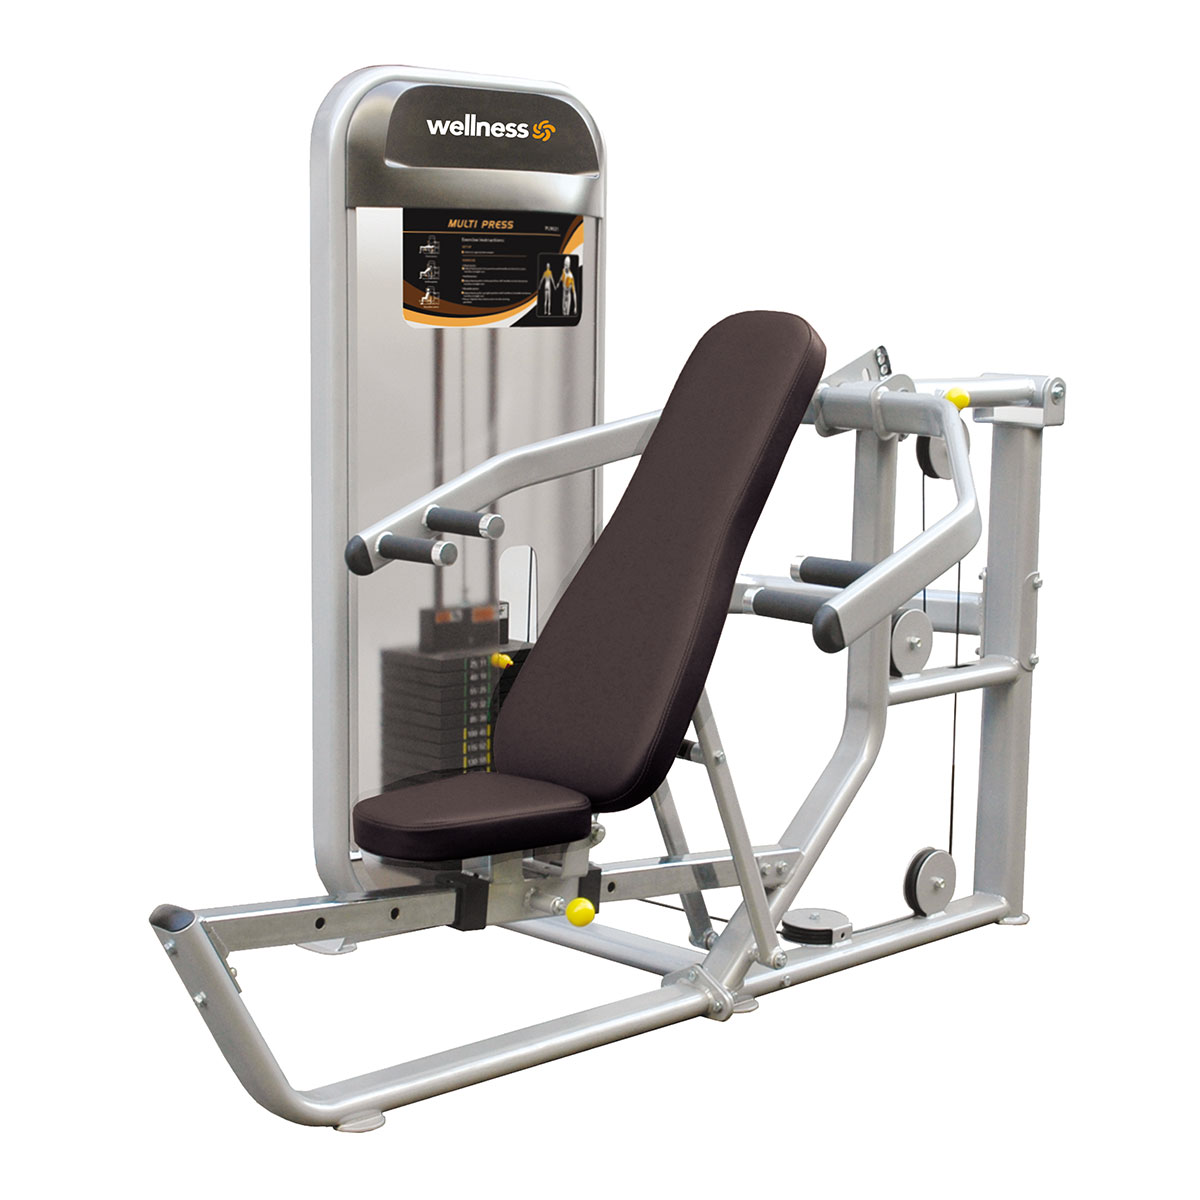 Multi Press Plamax Dual Series Wellness